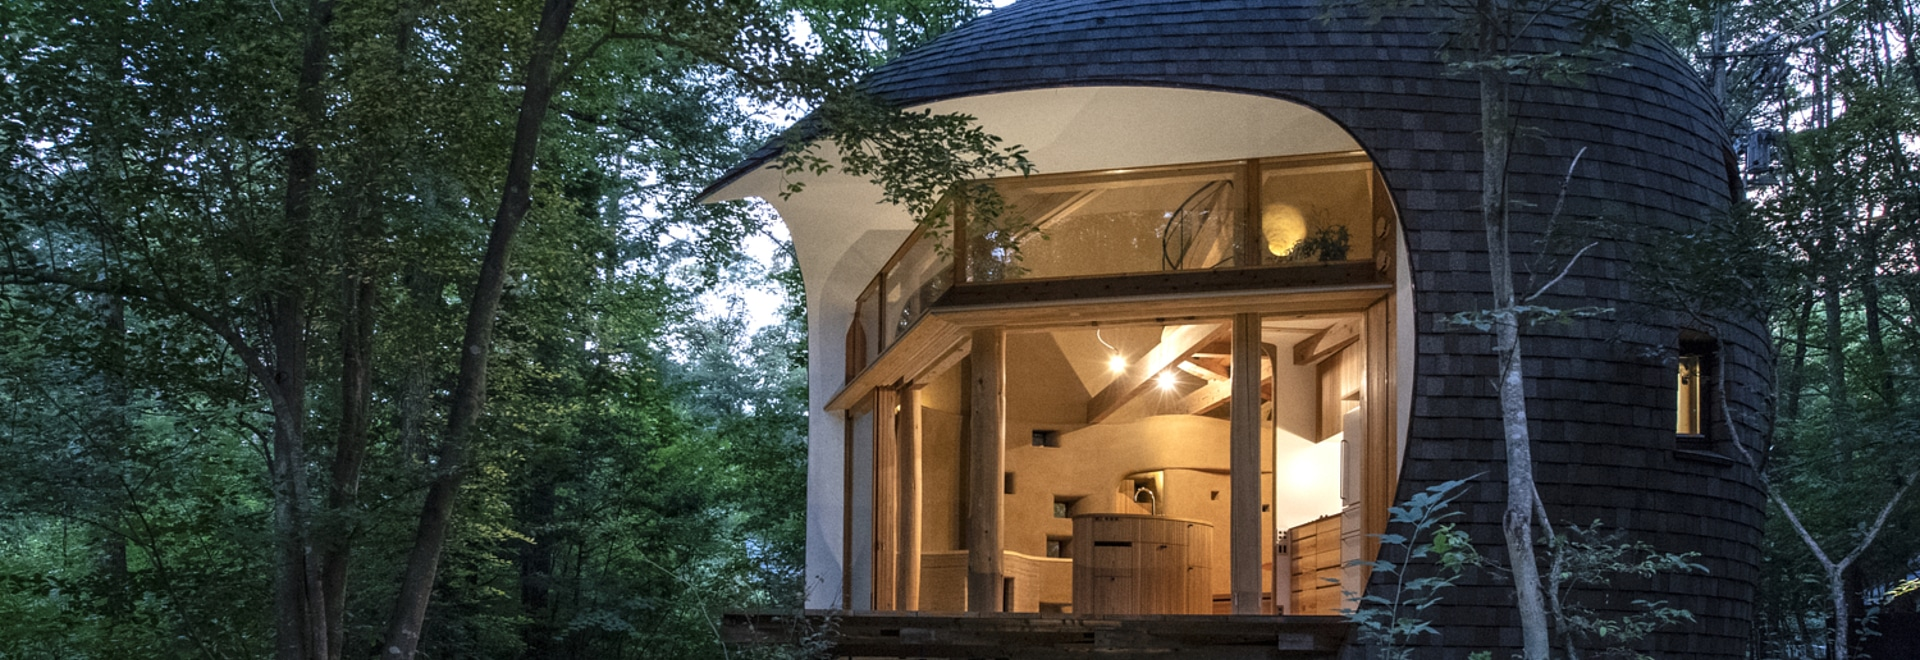 A Small House Shaped Like A Shell Is Surrounded By A Japanese Forest